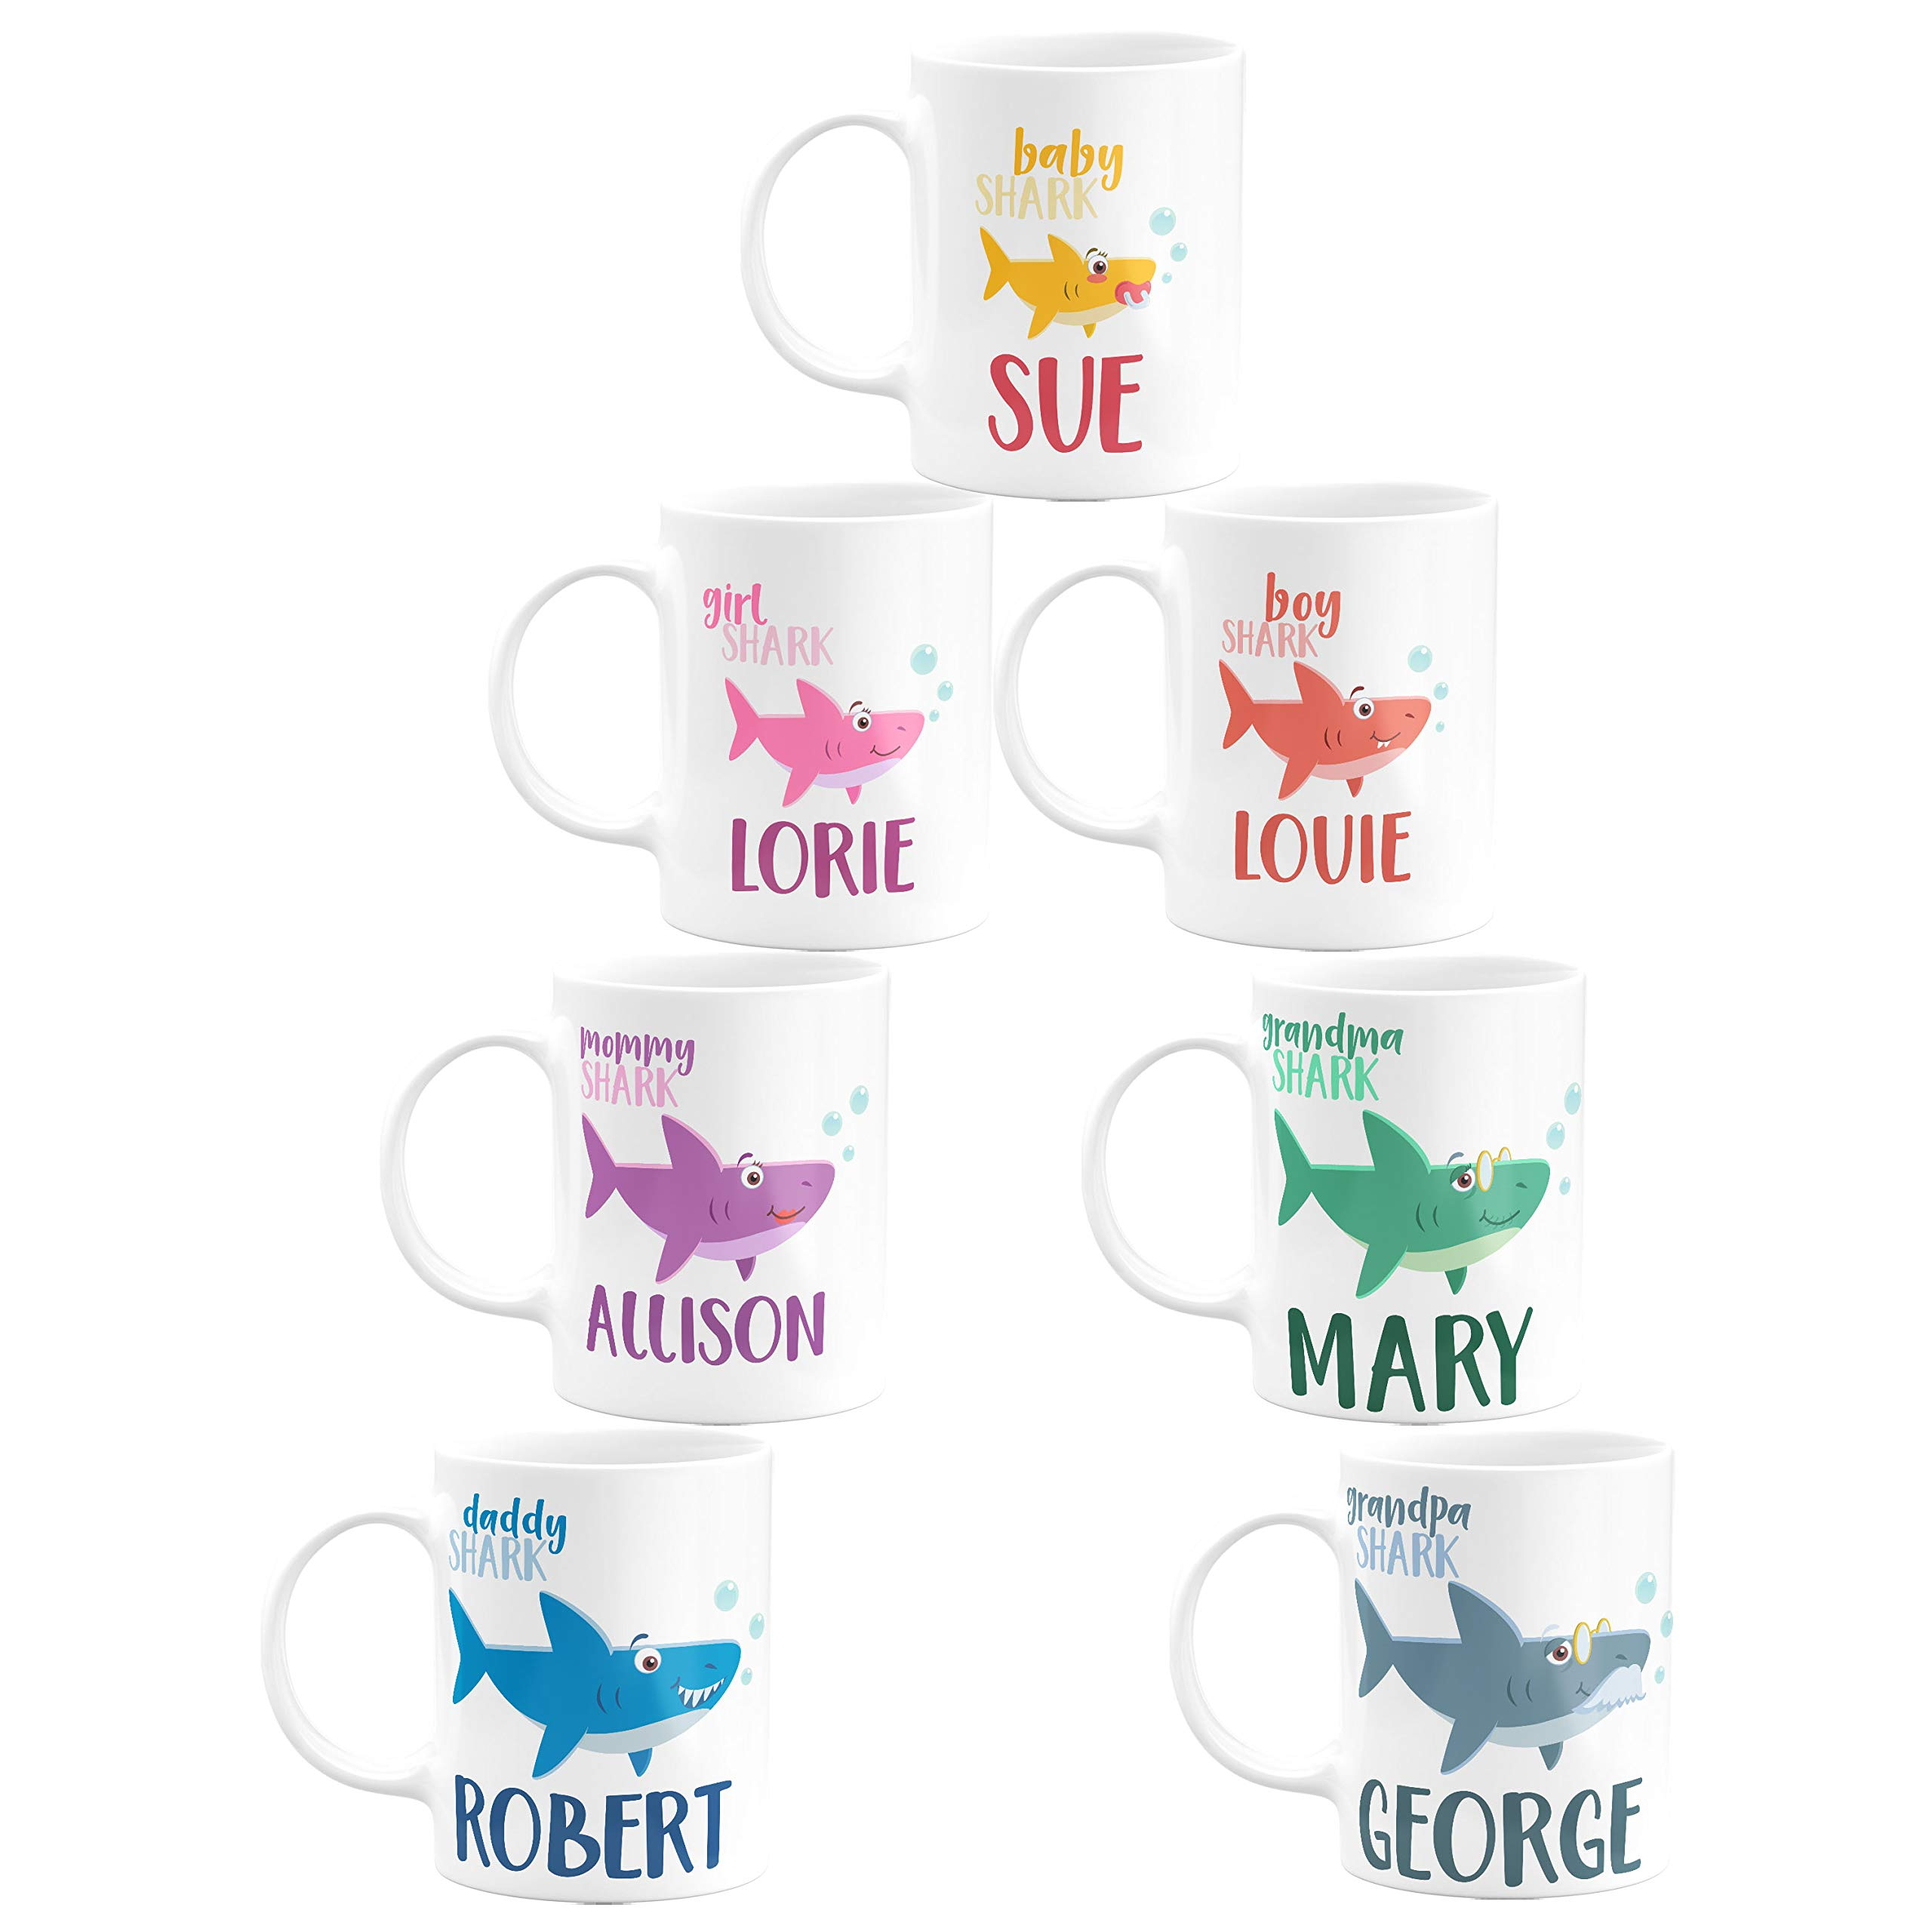 Personalized Birthday Gifts Shark Family Coffee Mug with Your Names - 11oz & 15oz Large Cups with Matching Coasters - Birthday Gifts, Christmas Gifts, Mother's Day Gifts - Sharks Set of 7